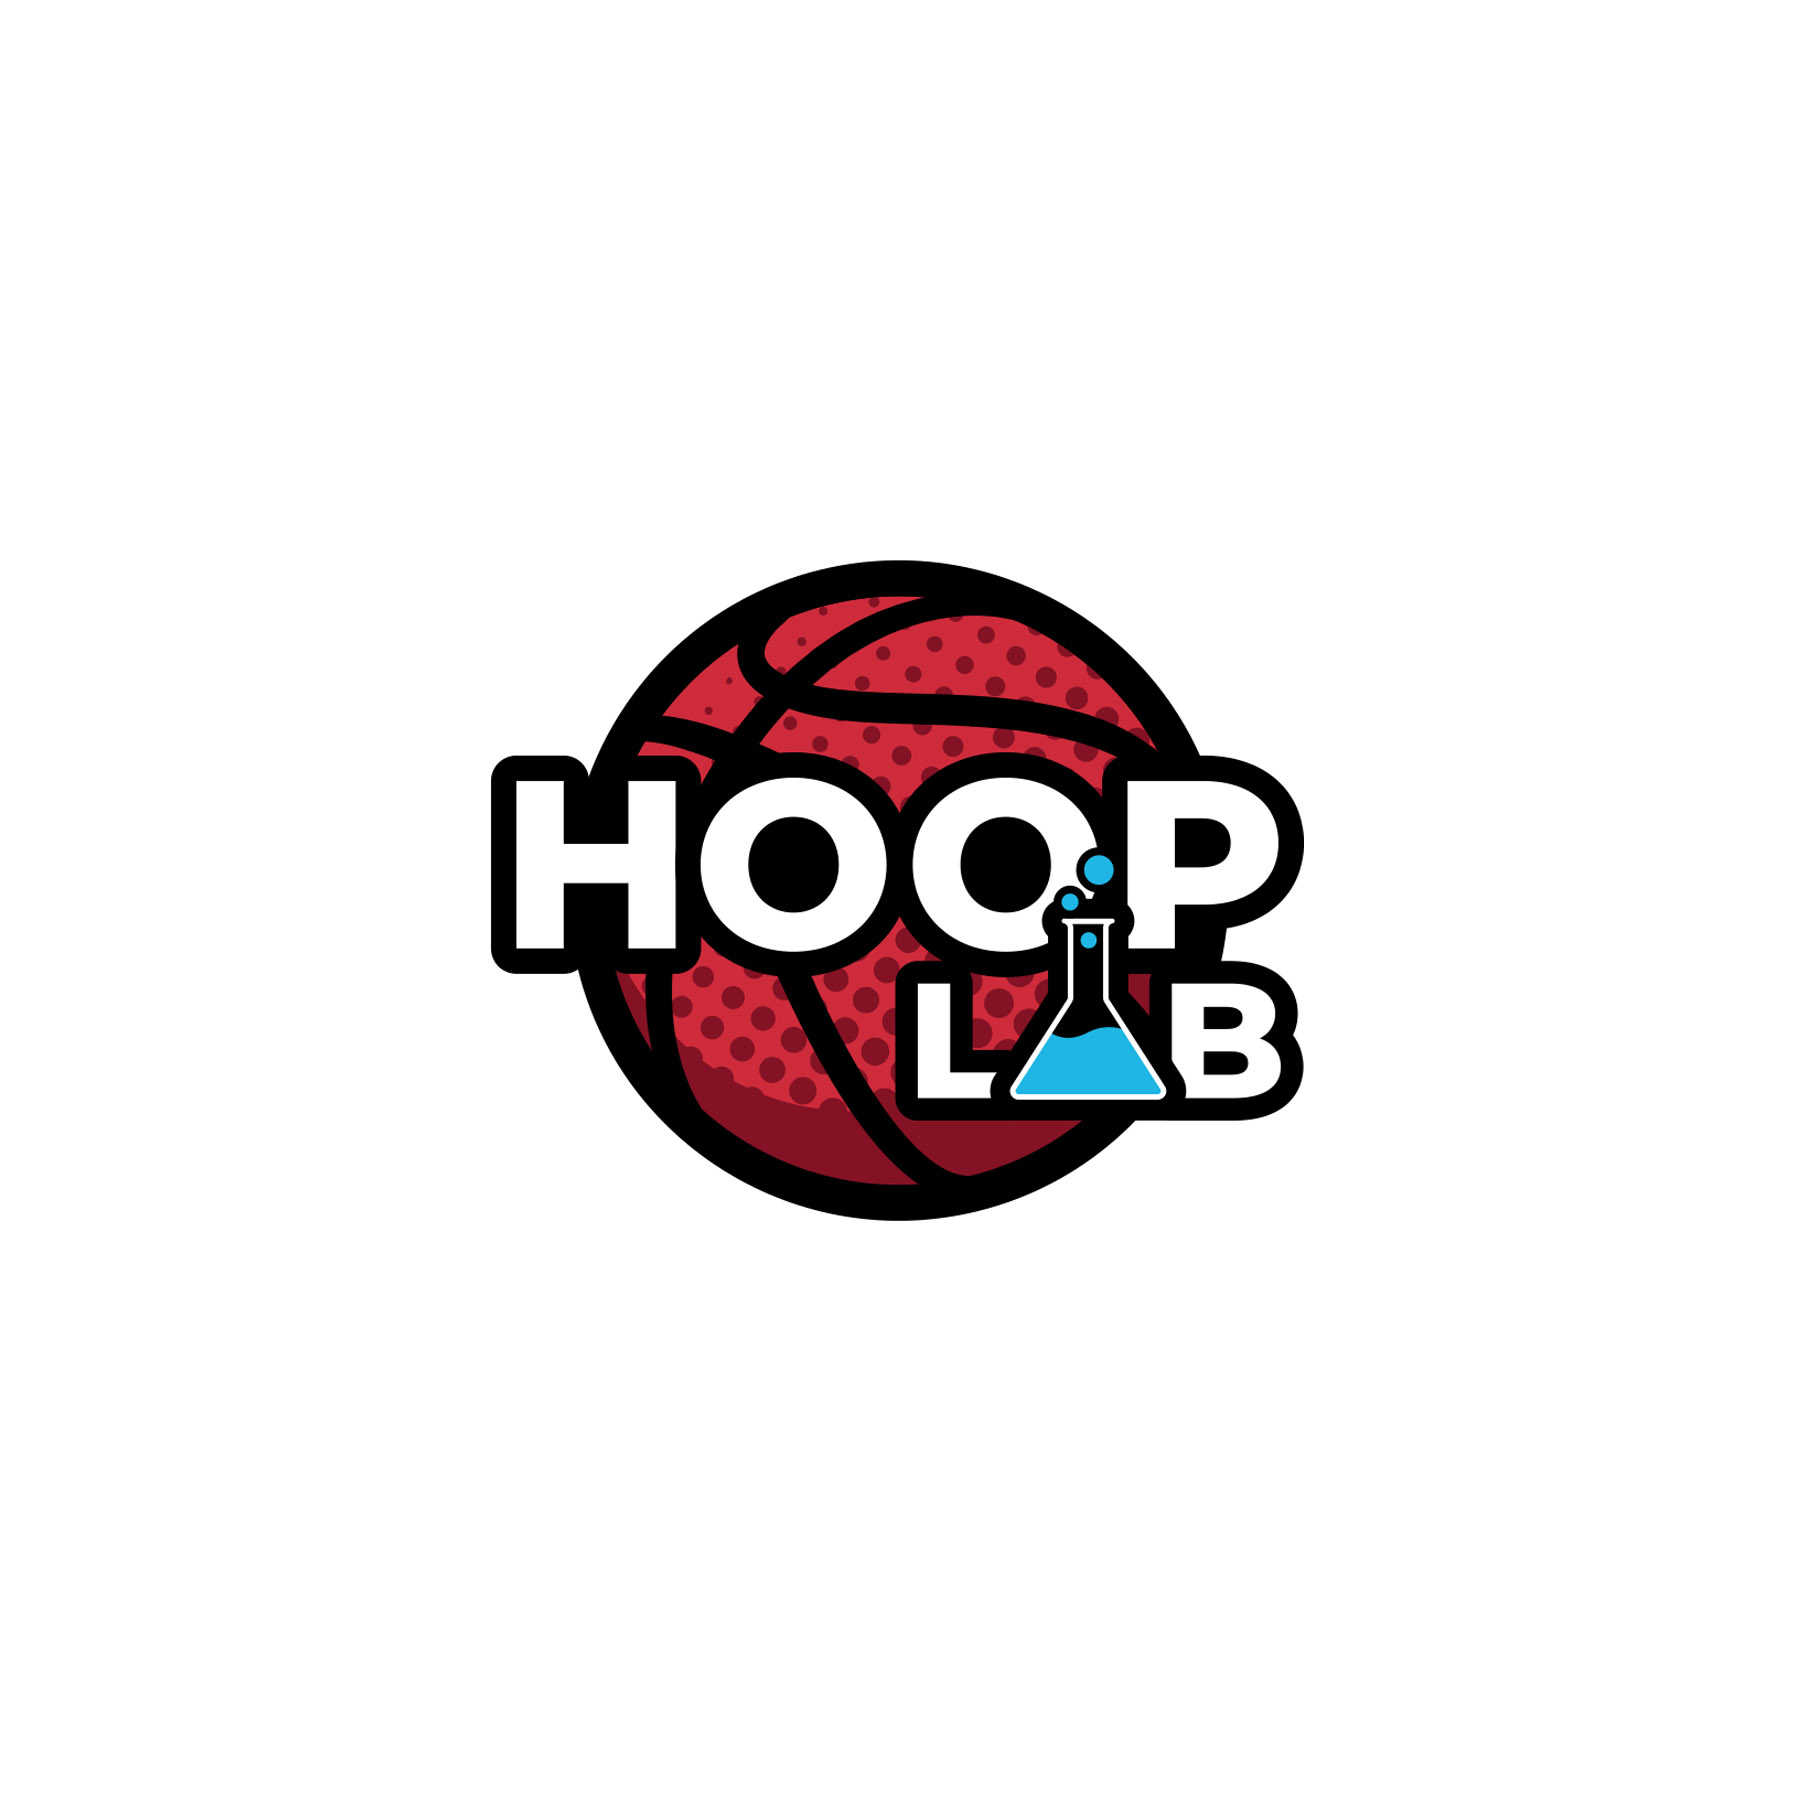 Hoop Lab - Basketball Skills Training